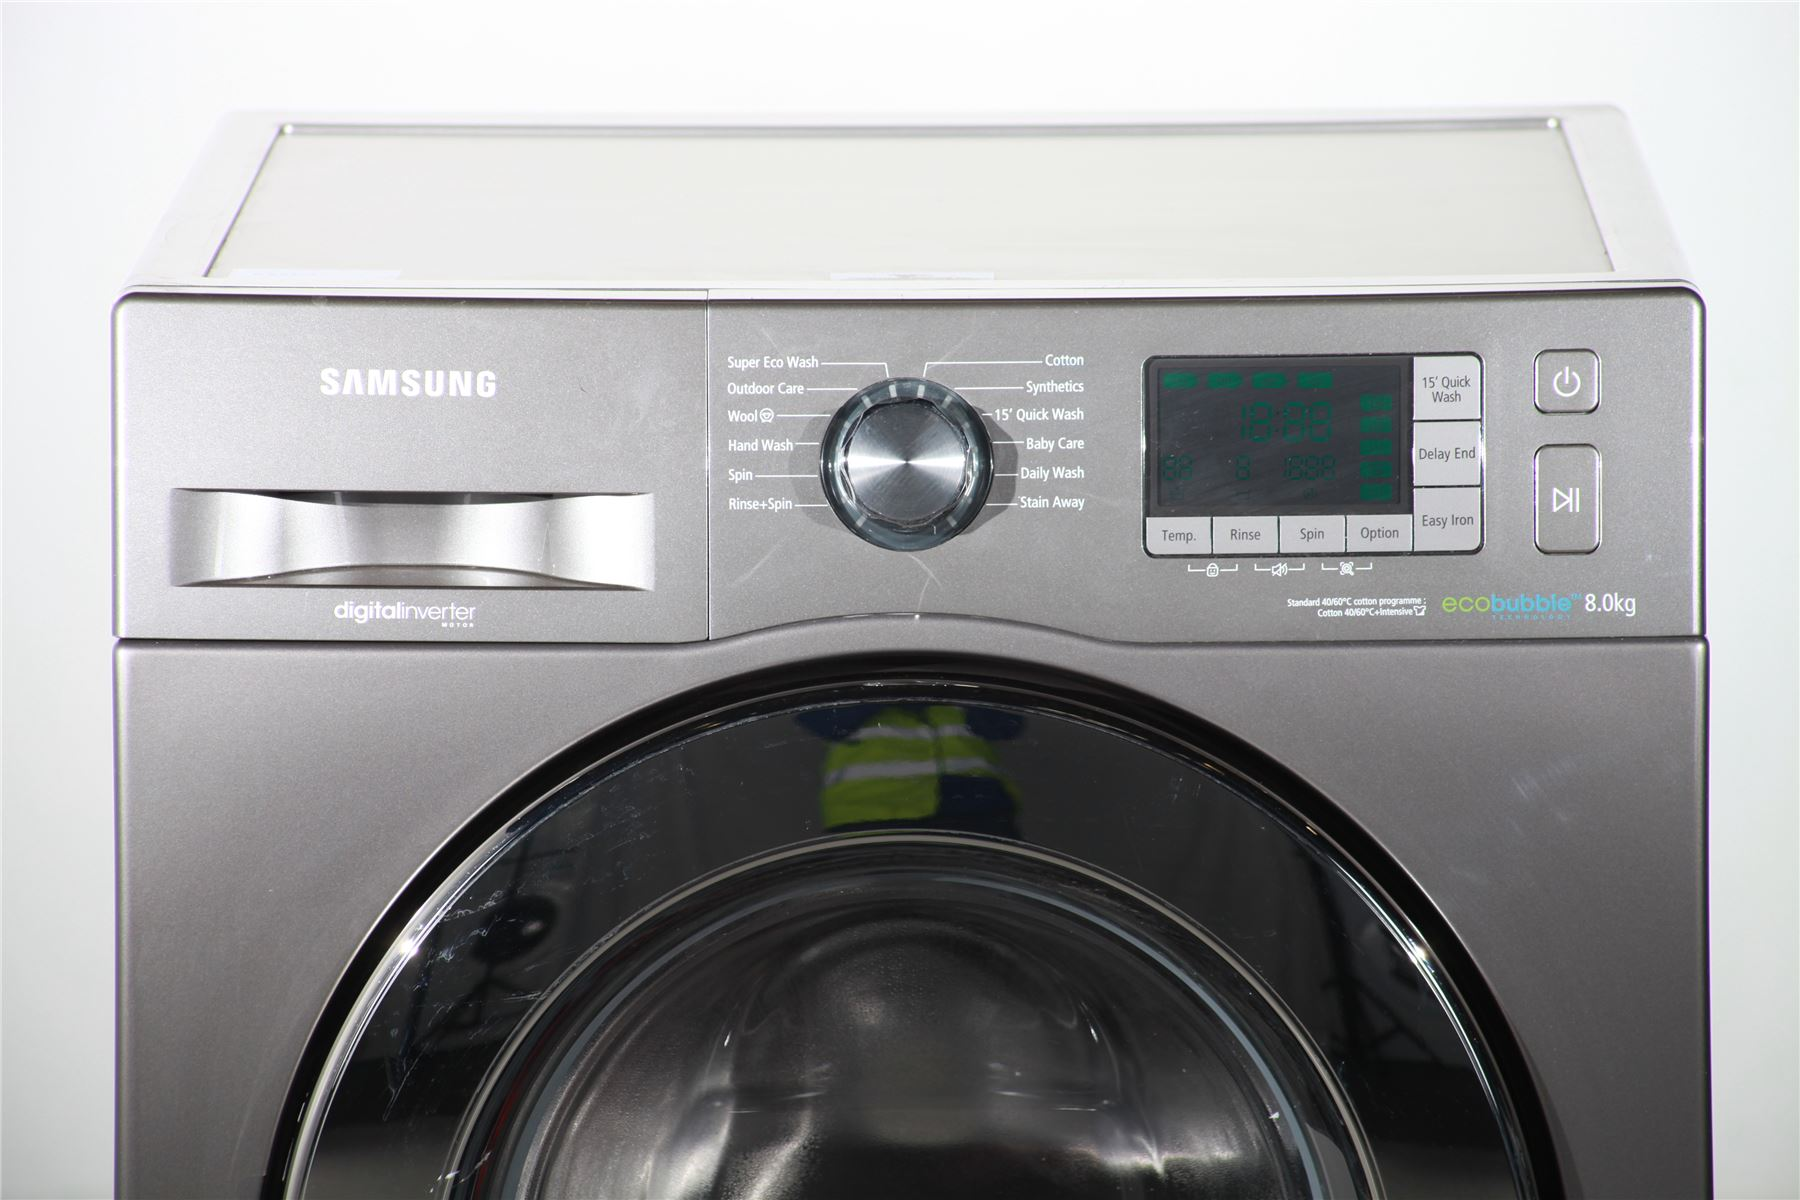 preloved samsung eco bubble 8kg washing machine wf80f5e5u4x silver for sale in edmonton. Black Bedroom Furniture Sets. Home Design Ideas